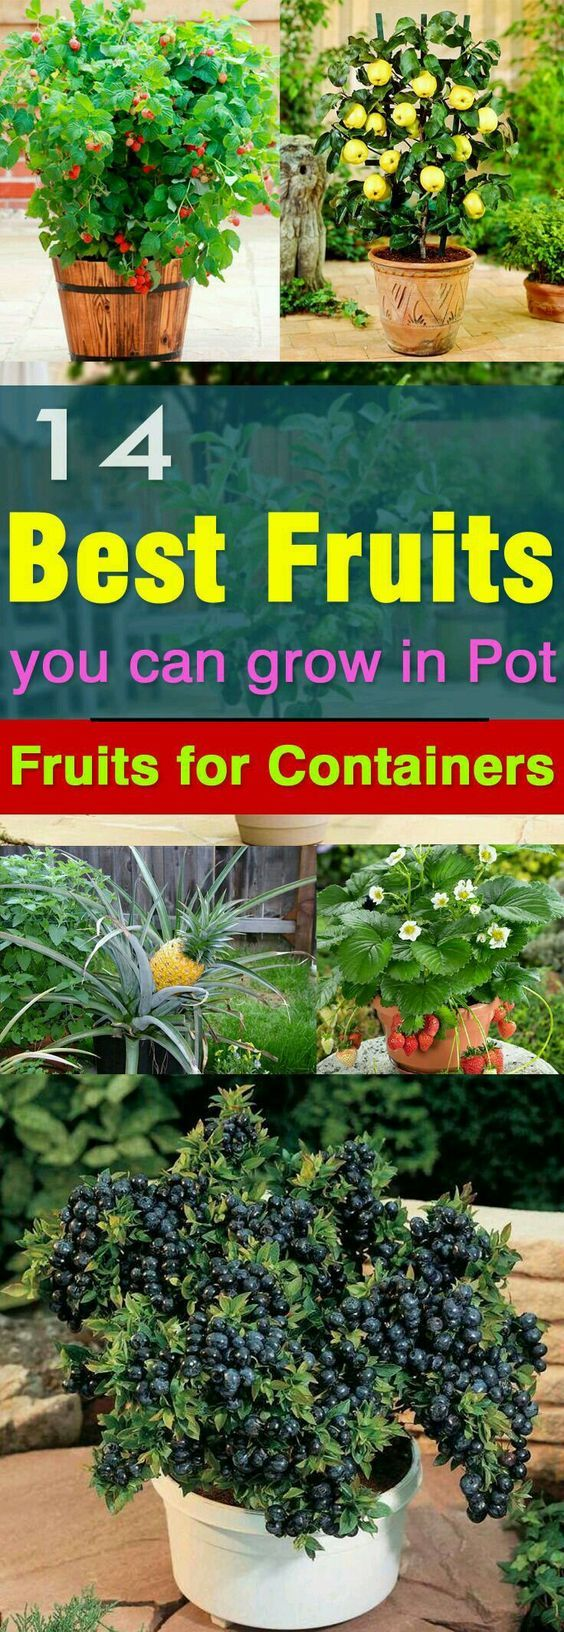 Best Fruits To Grow In Pots. Apartment Vegetable GardenApartment Balcony ...